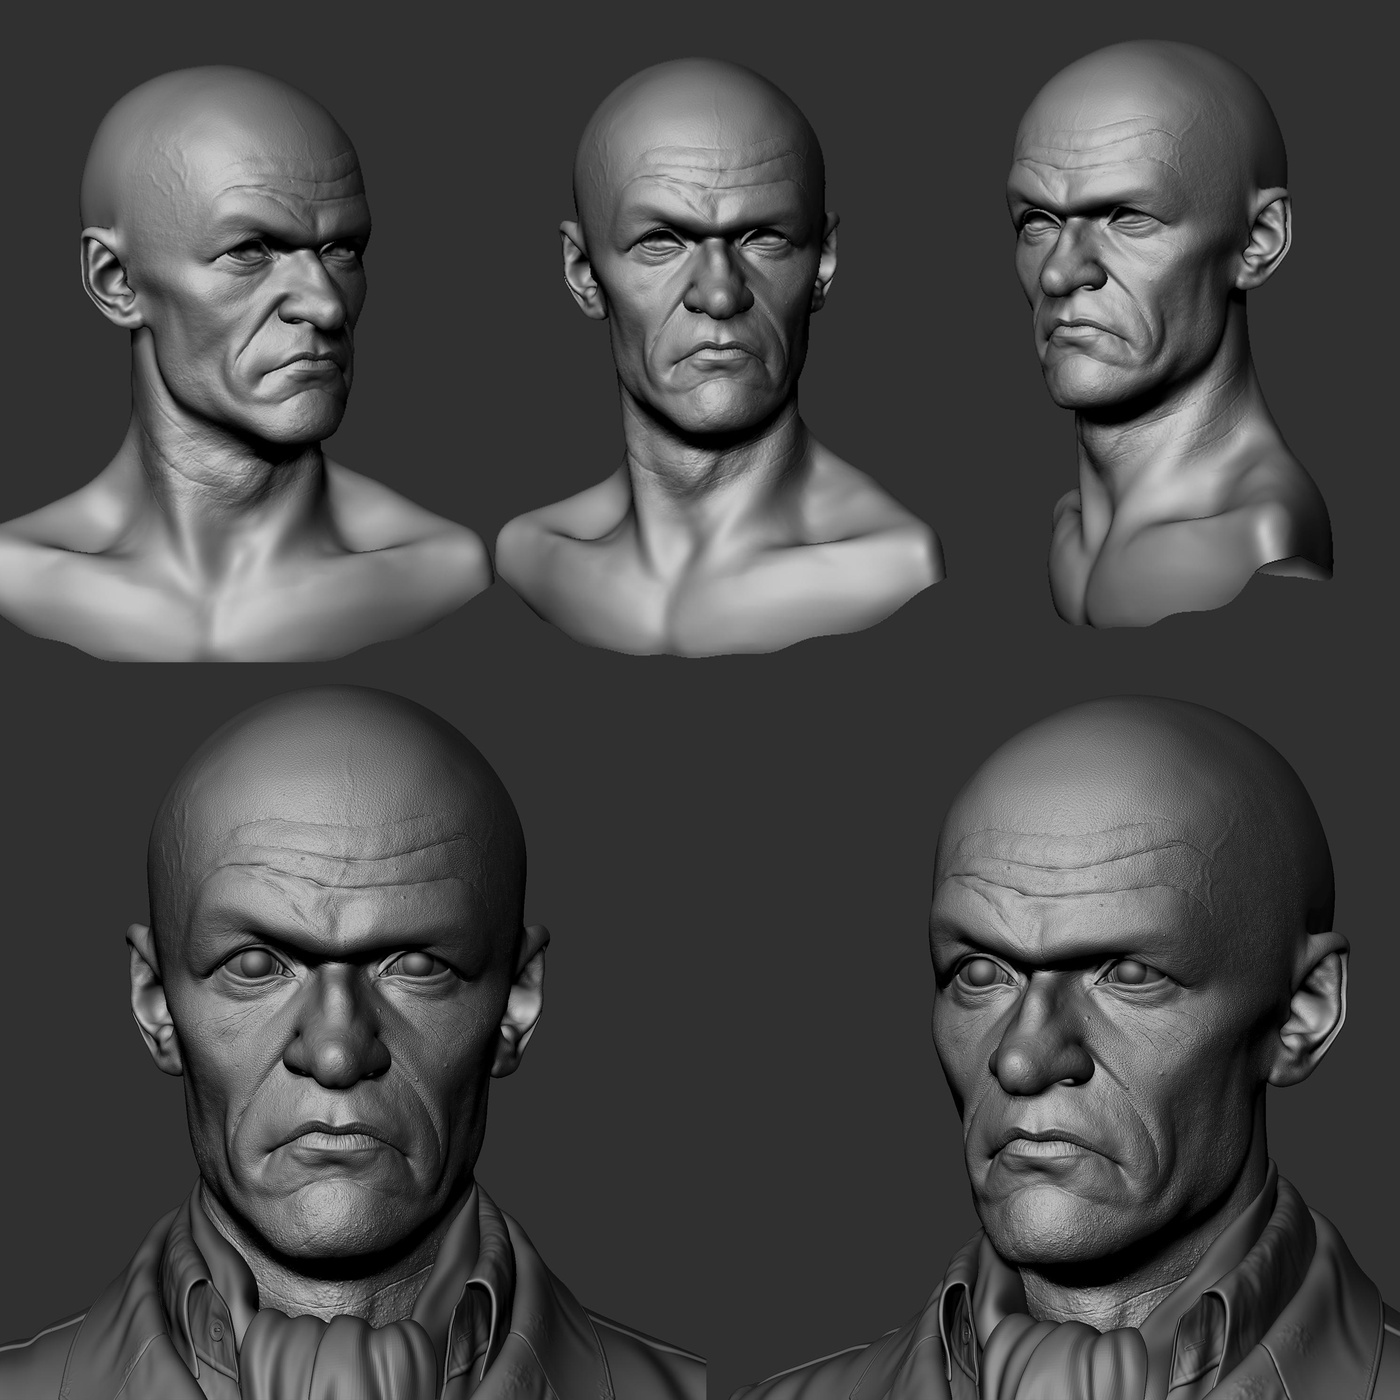 sculpting poses detail modelling render form male head